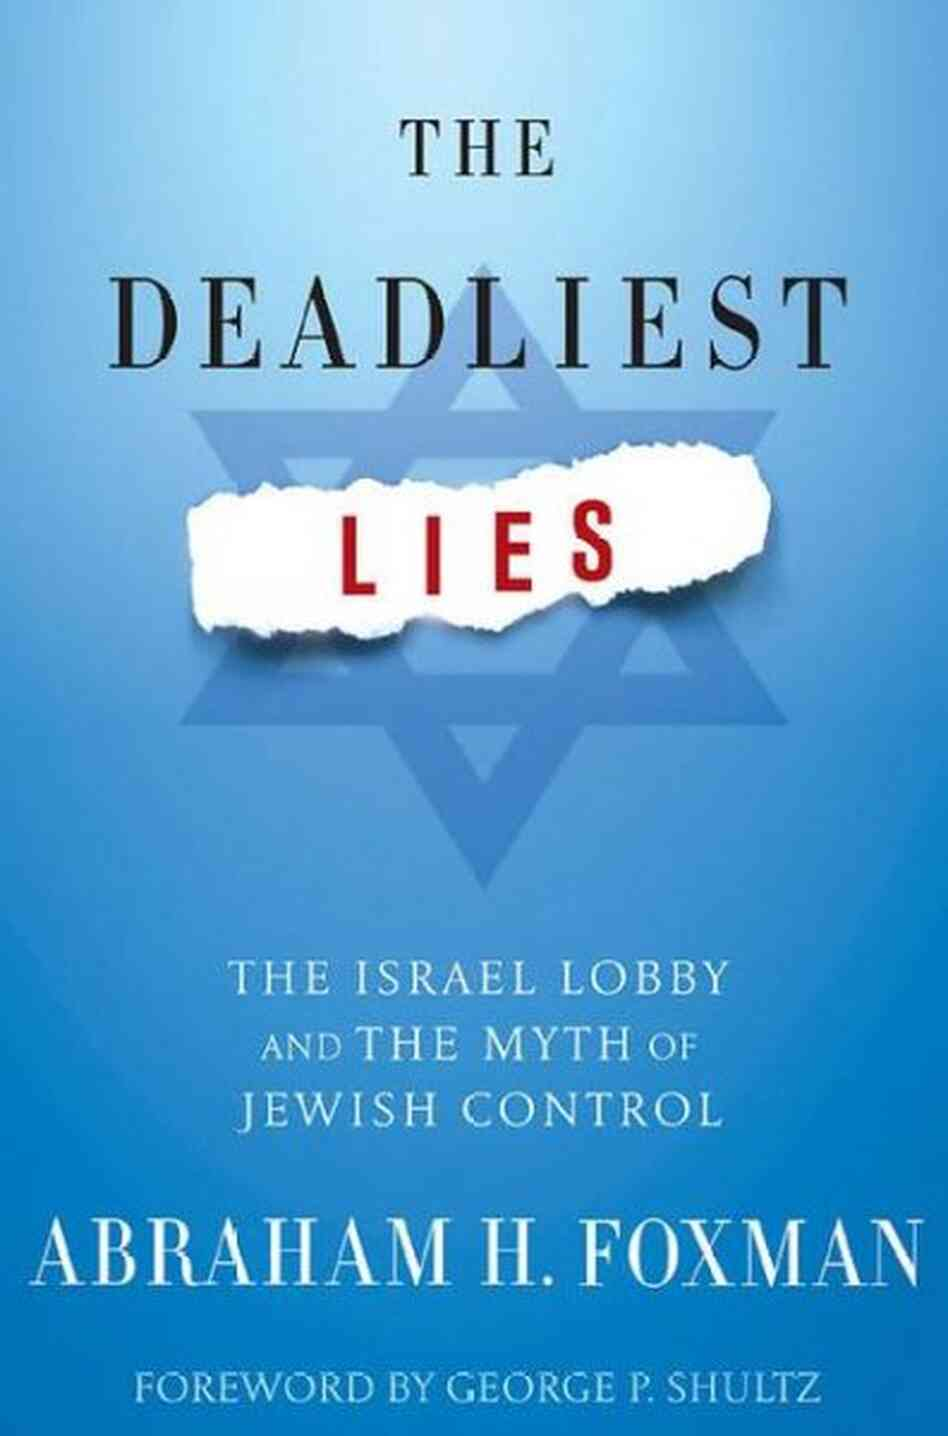 The Deadliest Lies